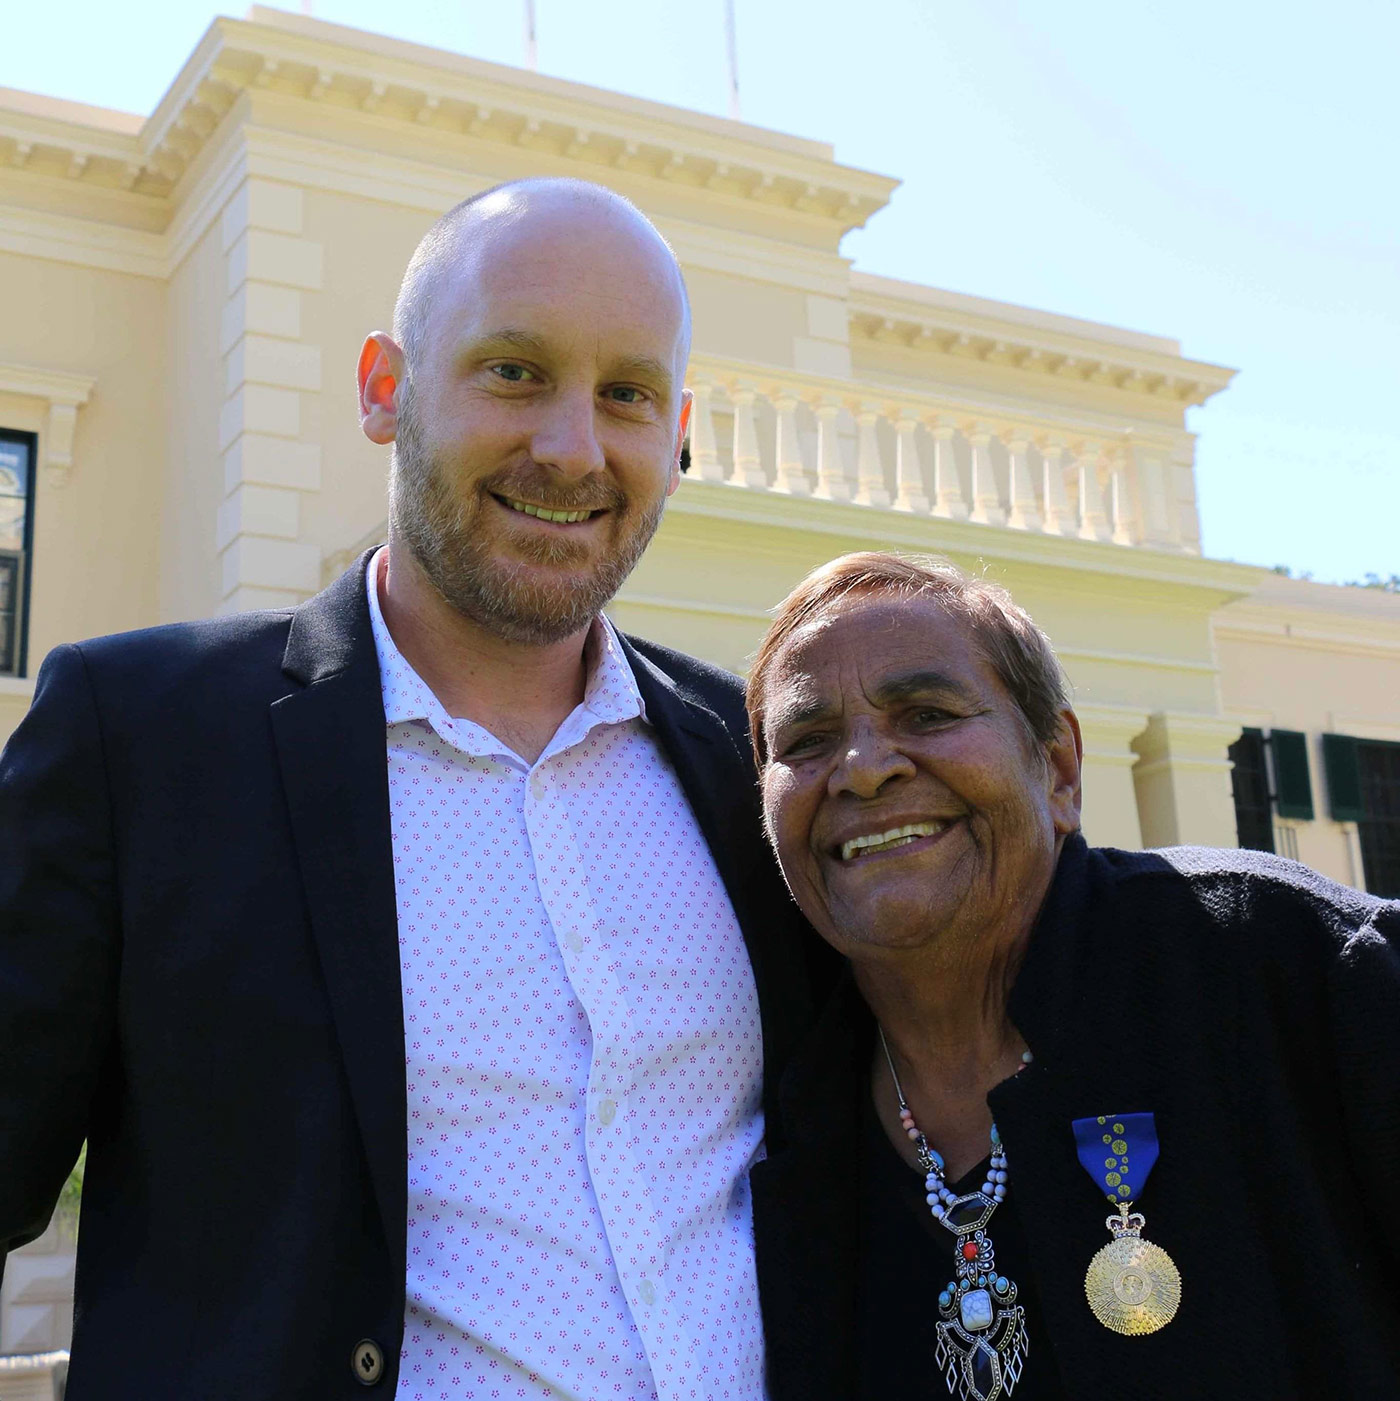 Thomas with Tyson Baird outside Government House in Adelaide